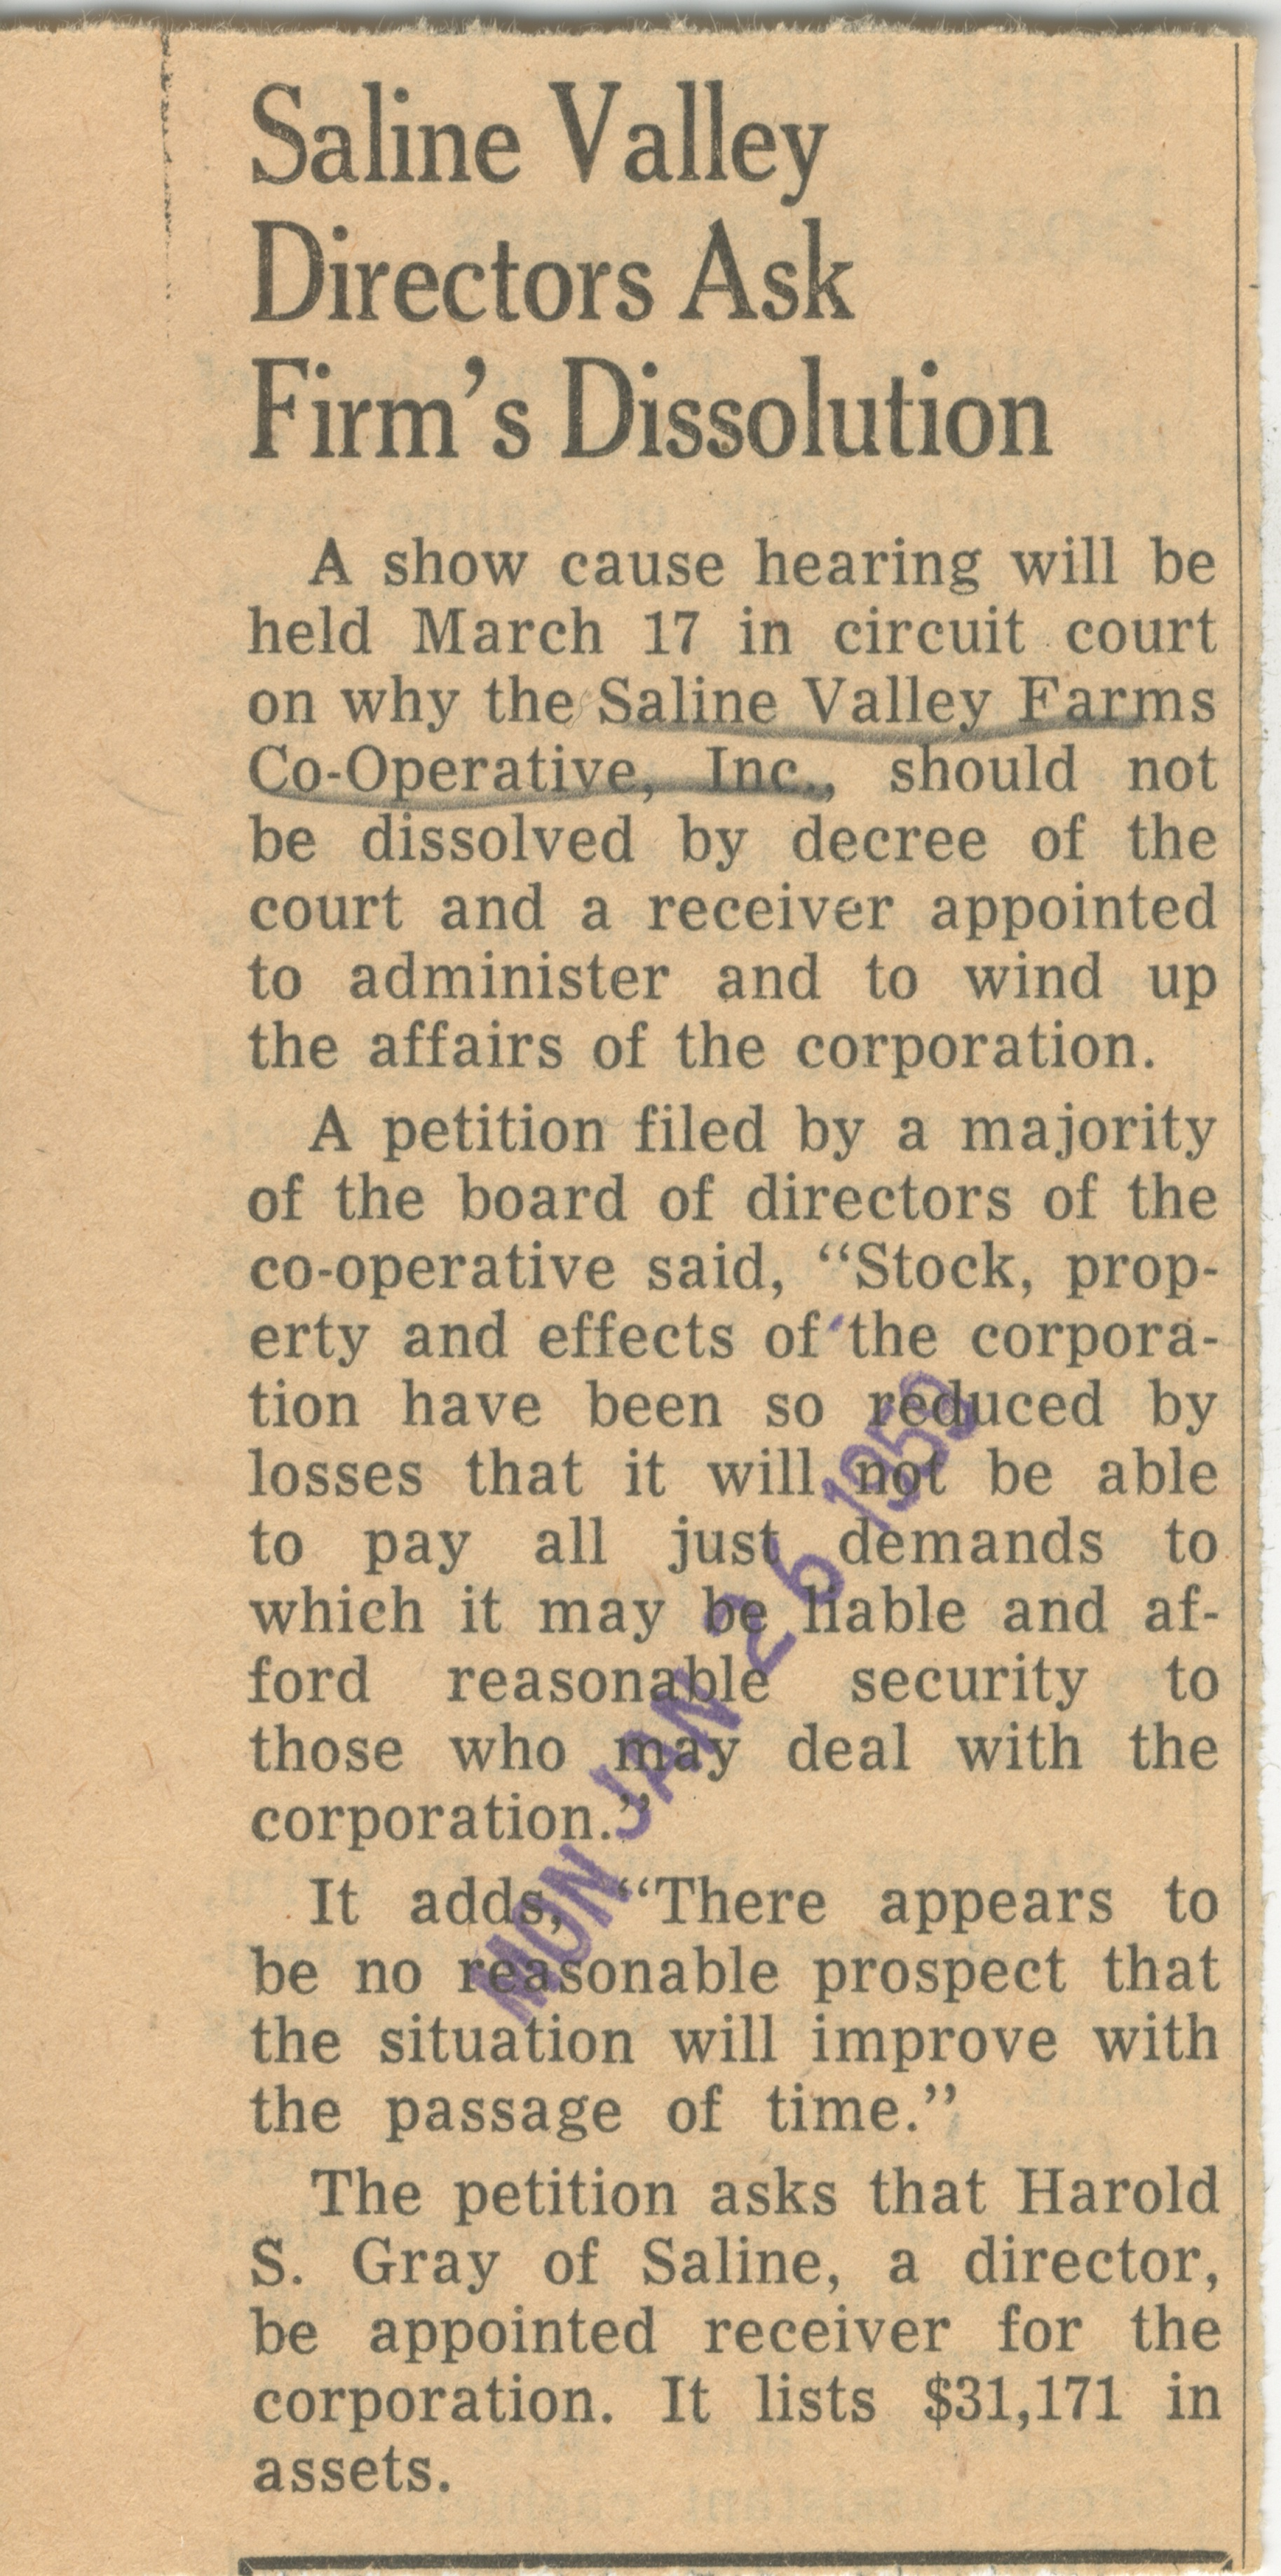 Saline Valley Director Ask Firm's Dissolution image